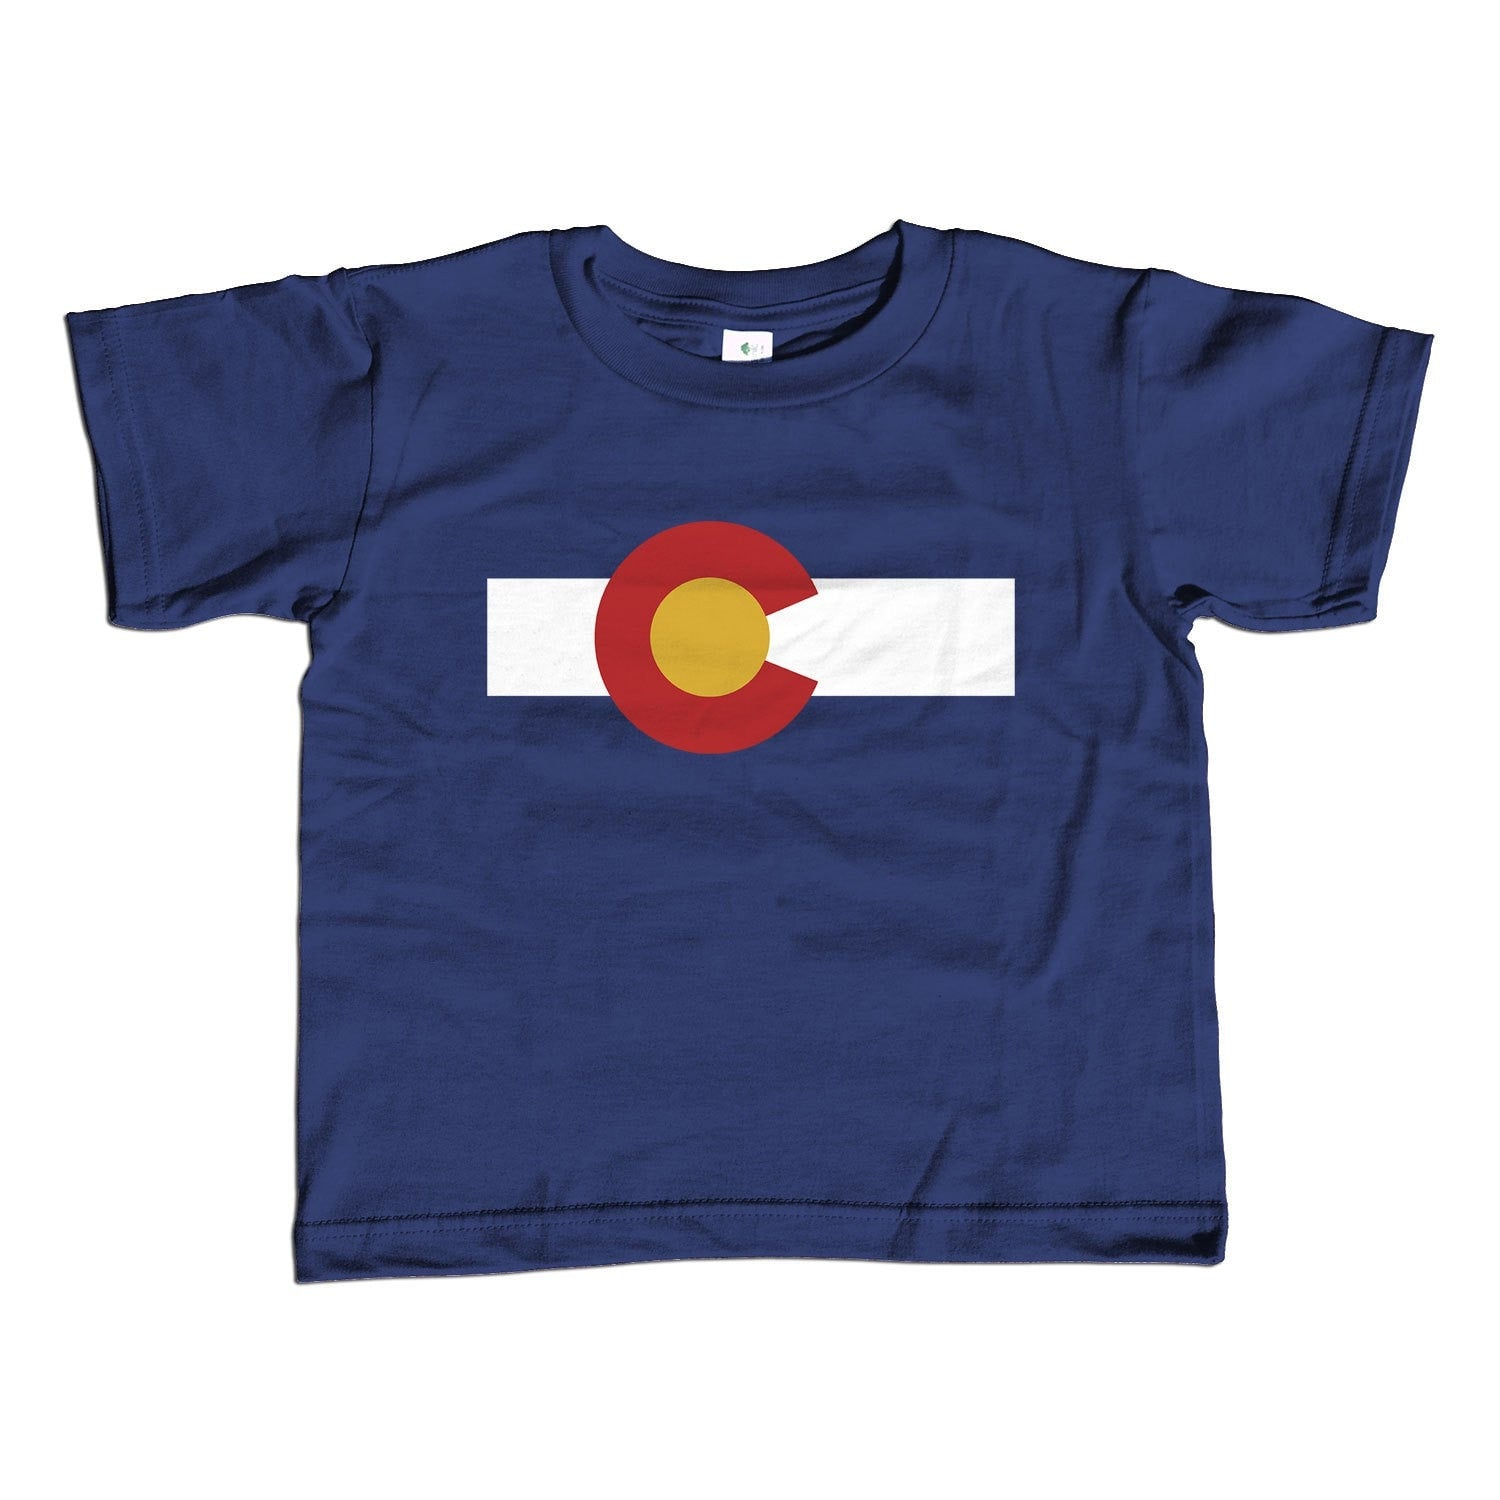 Girl's Colorado Flag T-Shirt - Unisex Fit